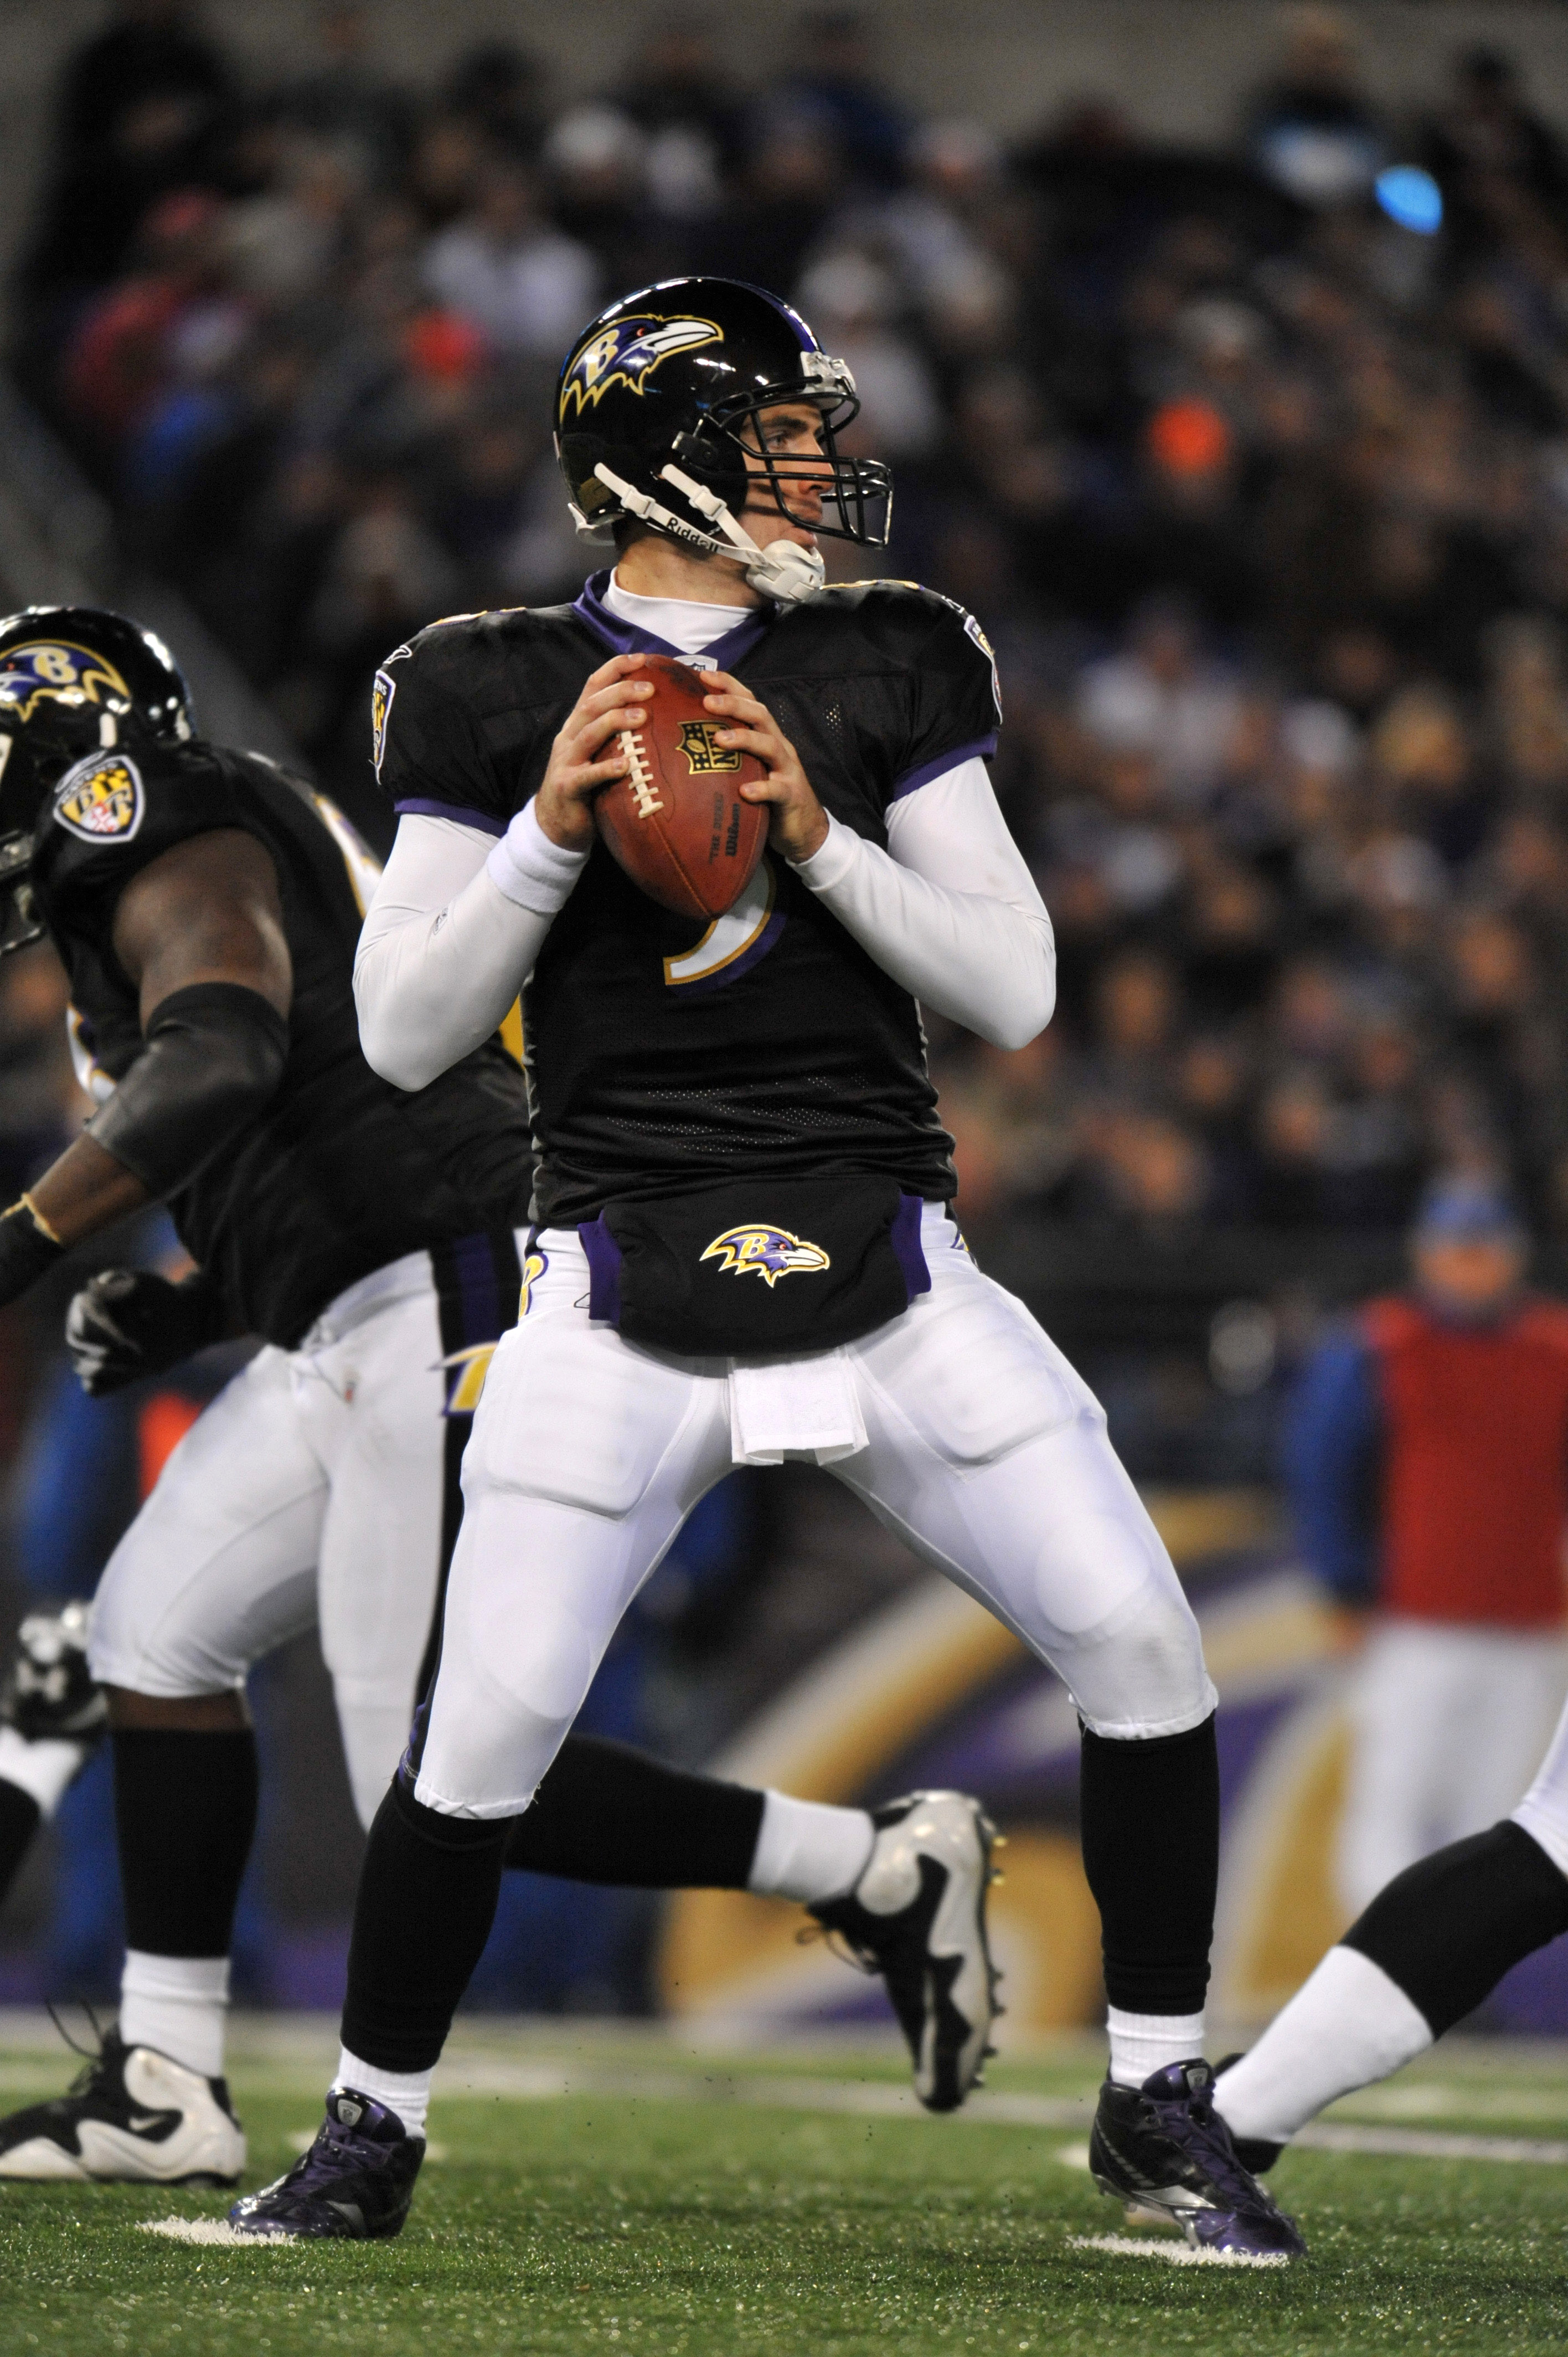 BALTIMORE, MD - NOVEMBER 28:  Joe Flacco #5 of the Baltimore Ravens passes against the Tampa Bay Buccaneers at M&T Bank Stadium on November 28, 2010 in Baltimore, Maryland. The Ravens lead the Buccaneers at the half 17-3. (Photo by Larry French/Getty Imag